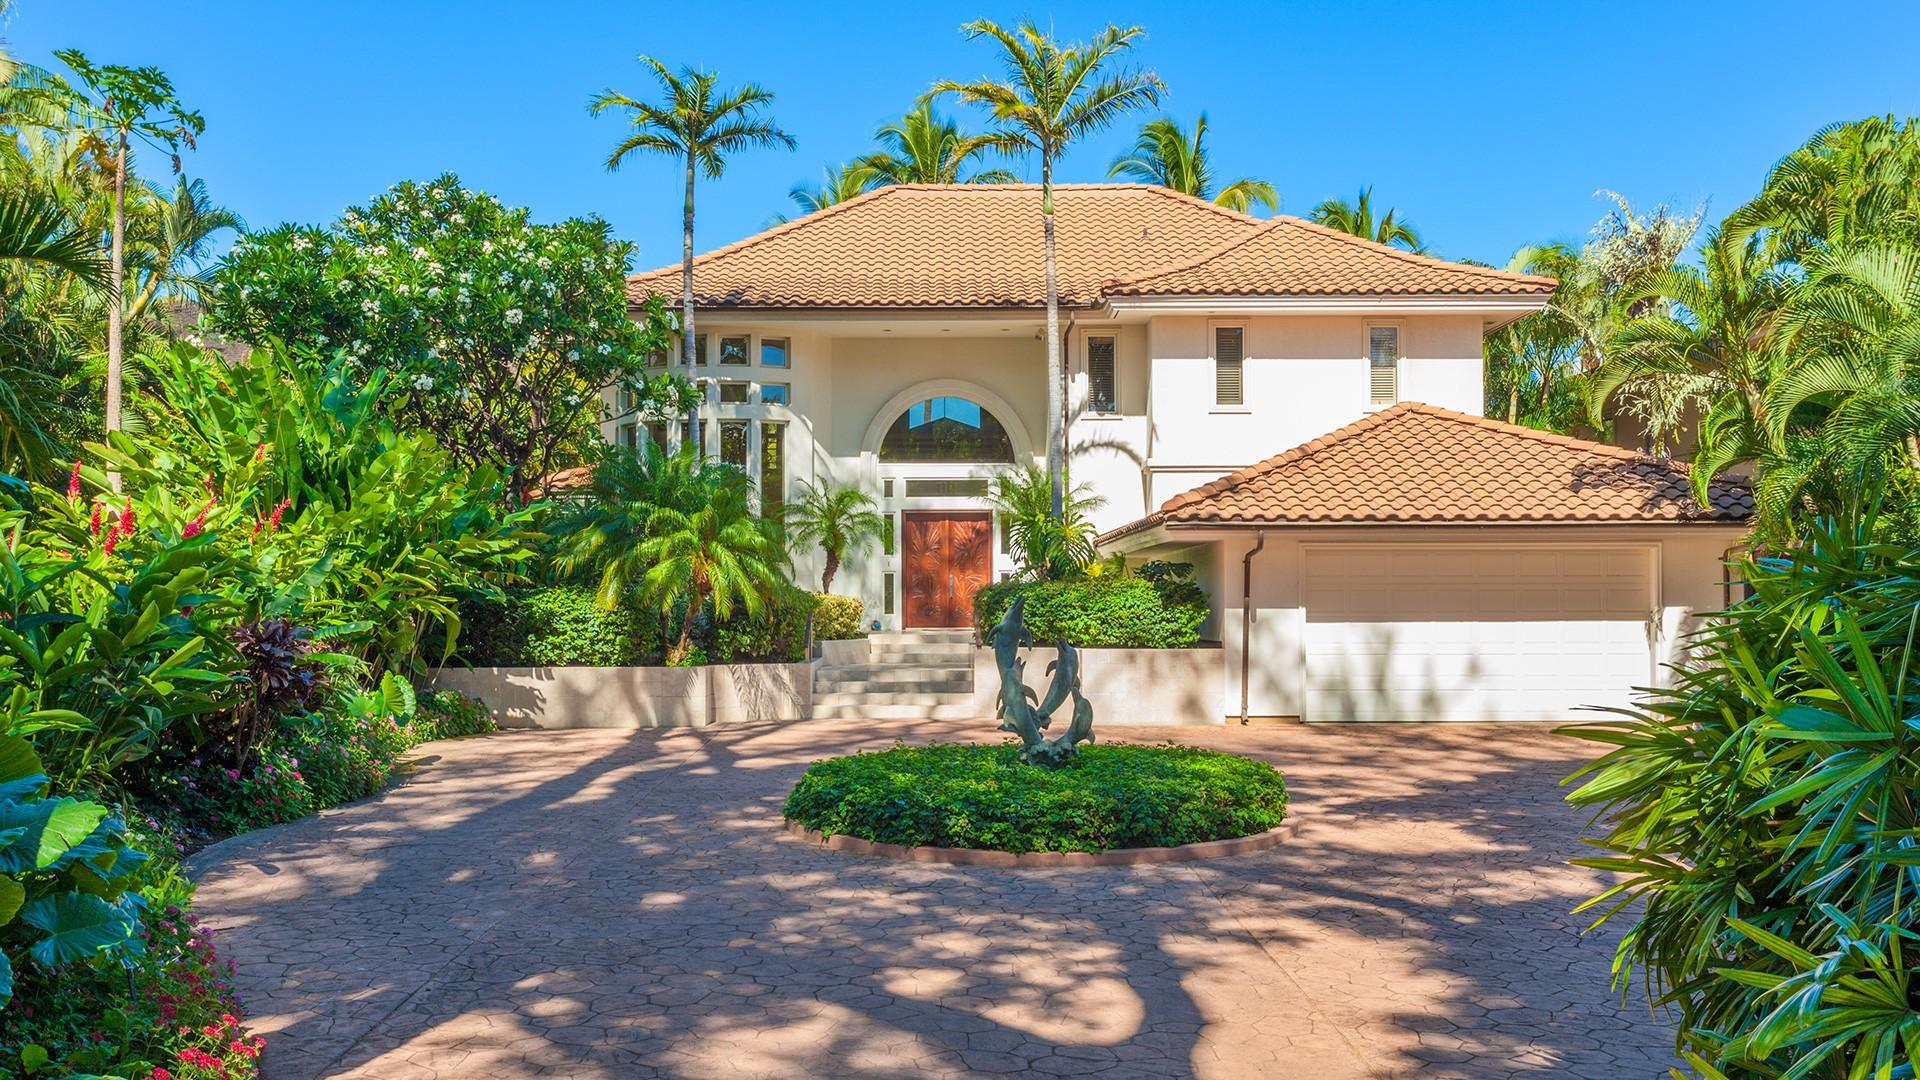 Sunny Surf is a gorgeous gated villa in the exclusive Wailea community of south Maui.